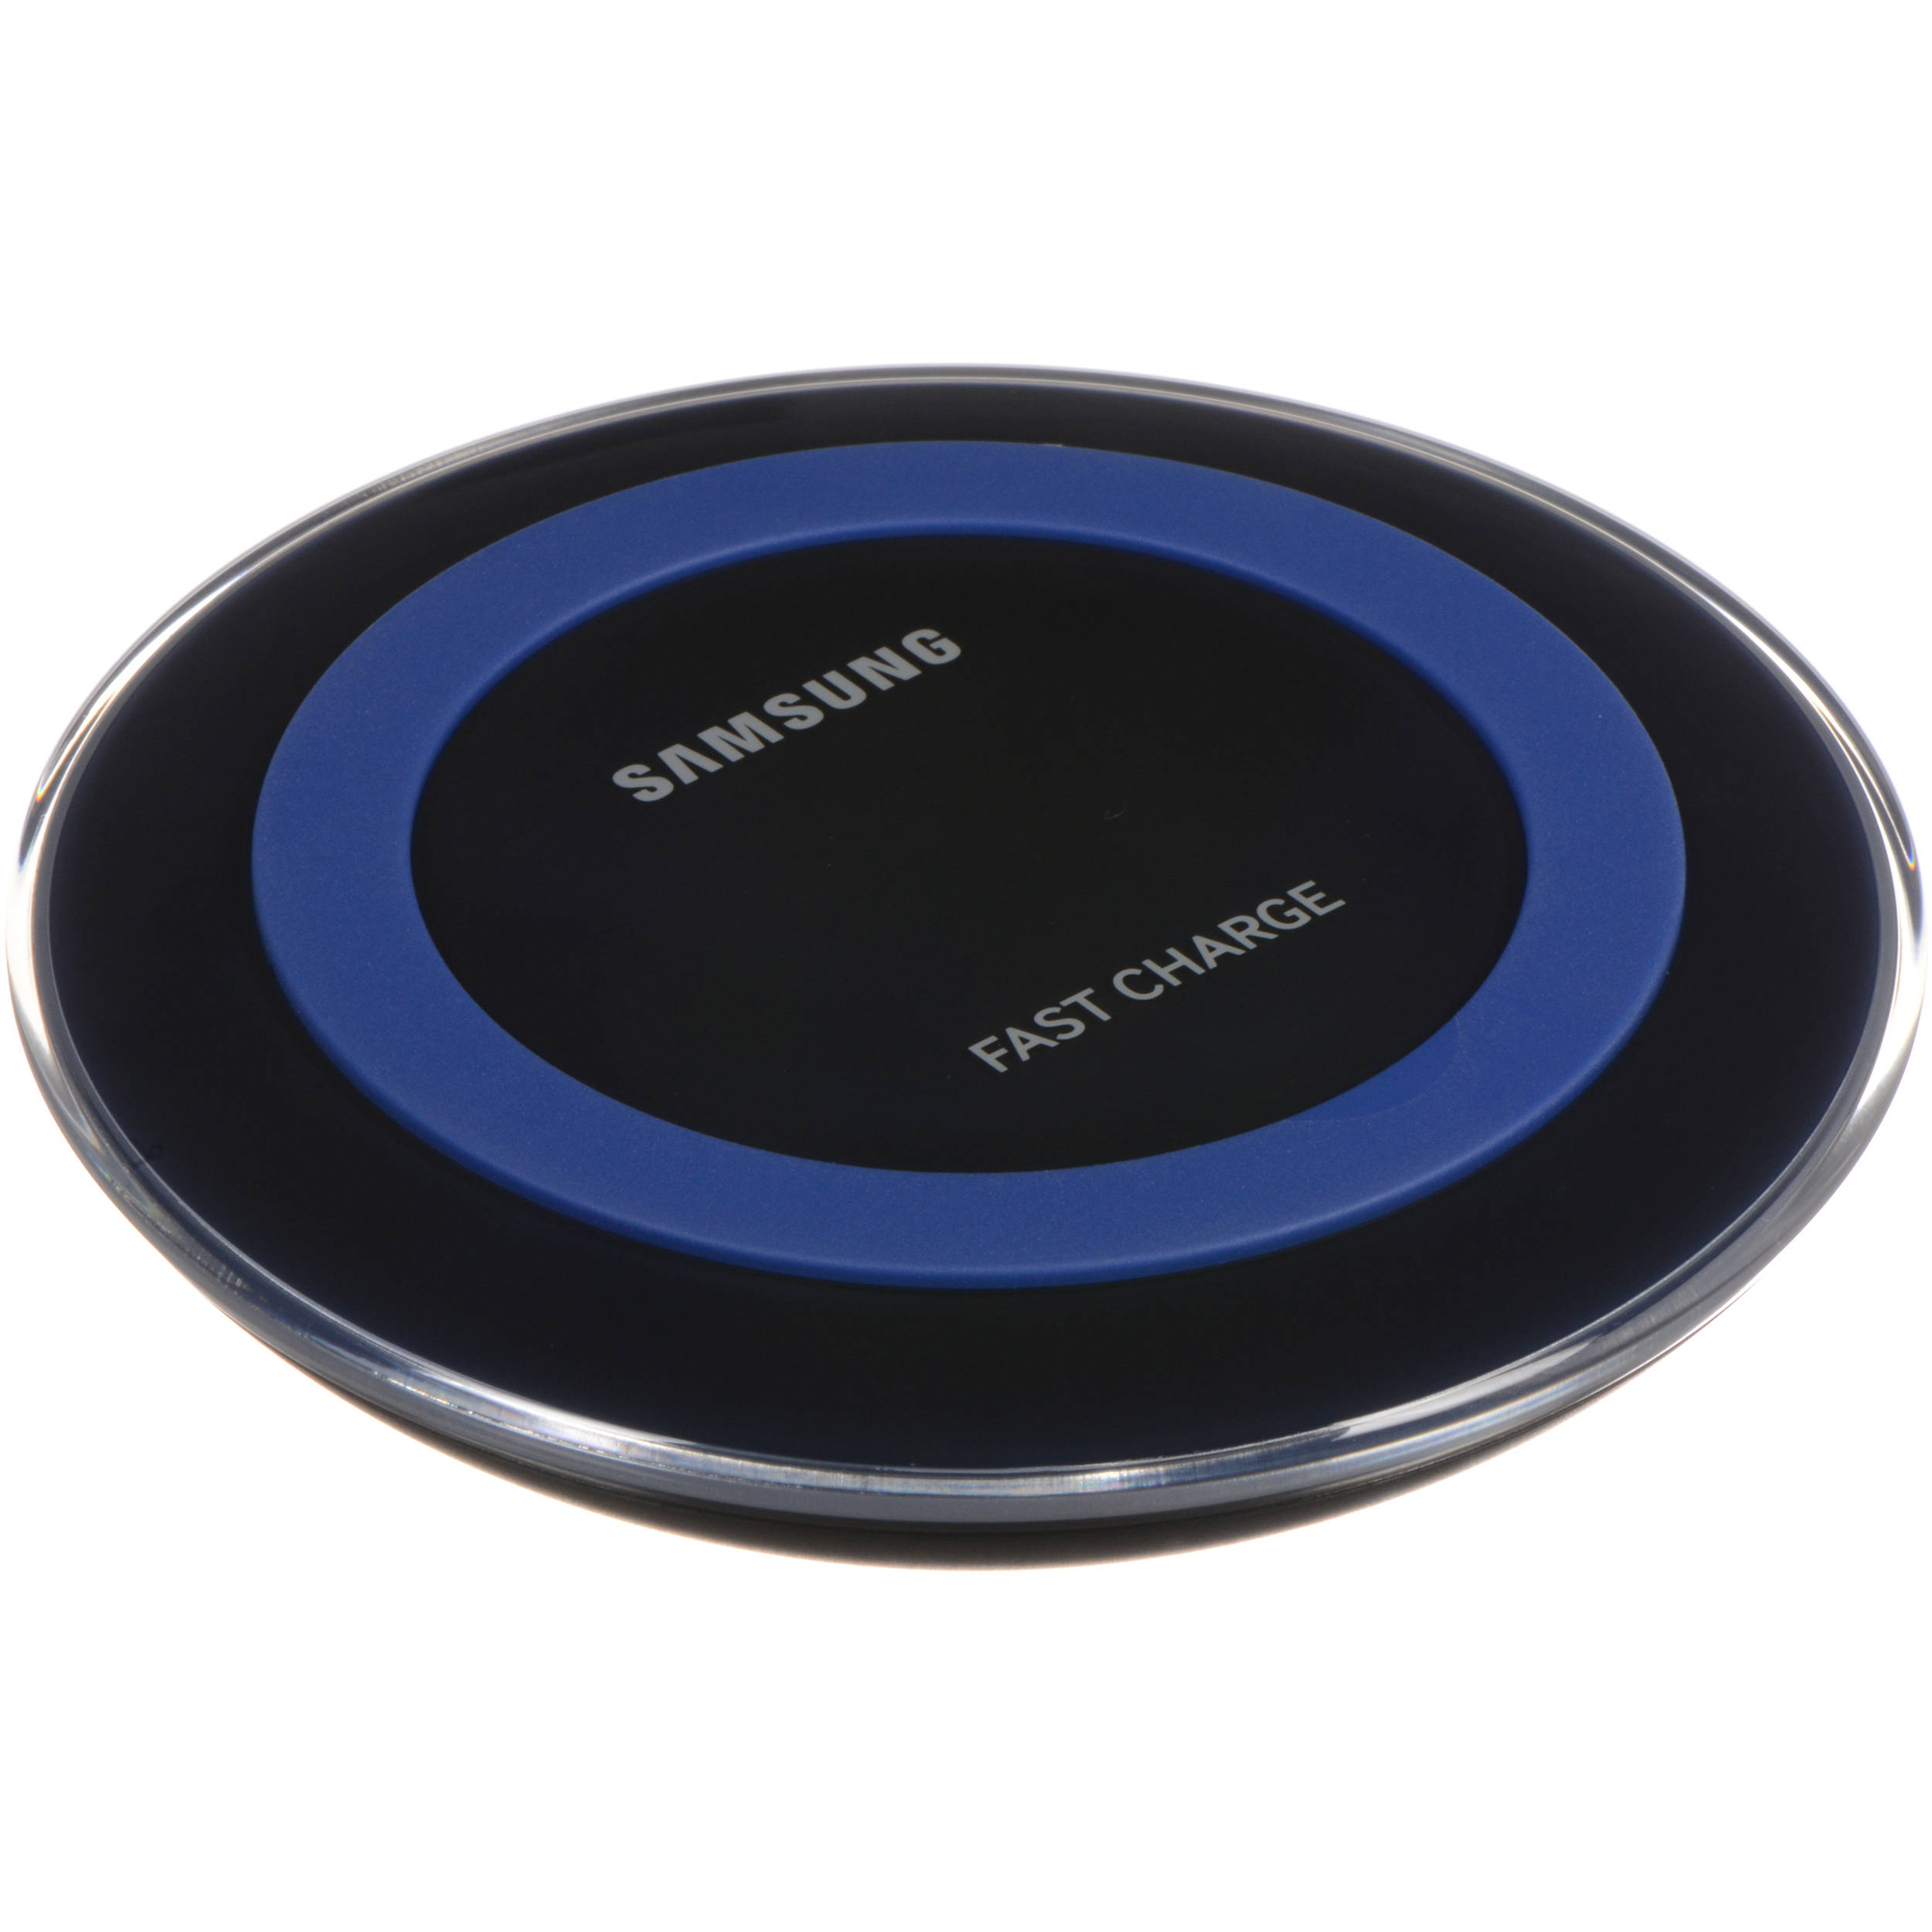 samsung fast charge qi wireless charging pad ep pn920tcegus b h. Black Bedroom Furniture Sets. Home Design Ideas